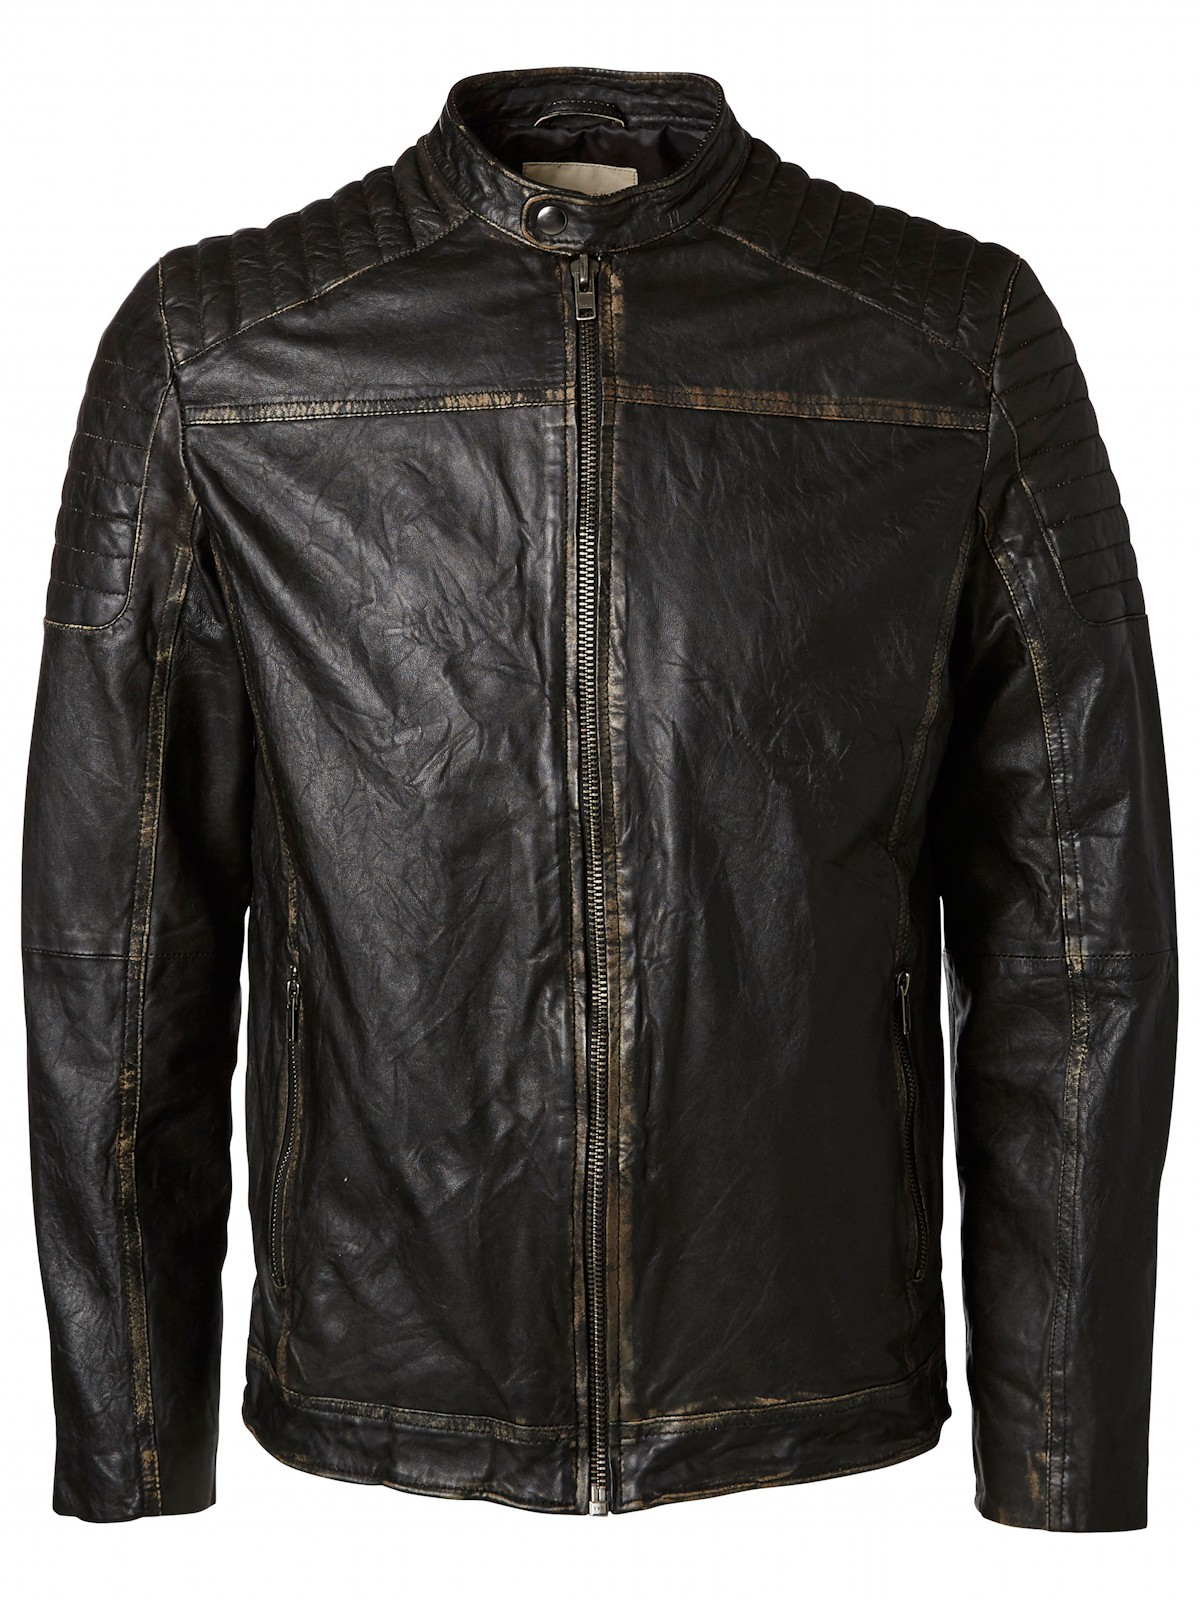 selected herren biker lederjacke shndestroy leather jacket 16048537 schwarz herren jacken. Black Bedroom Furniture Sets. Home Design Ideas